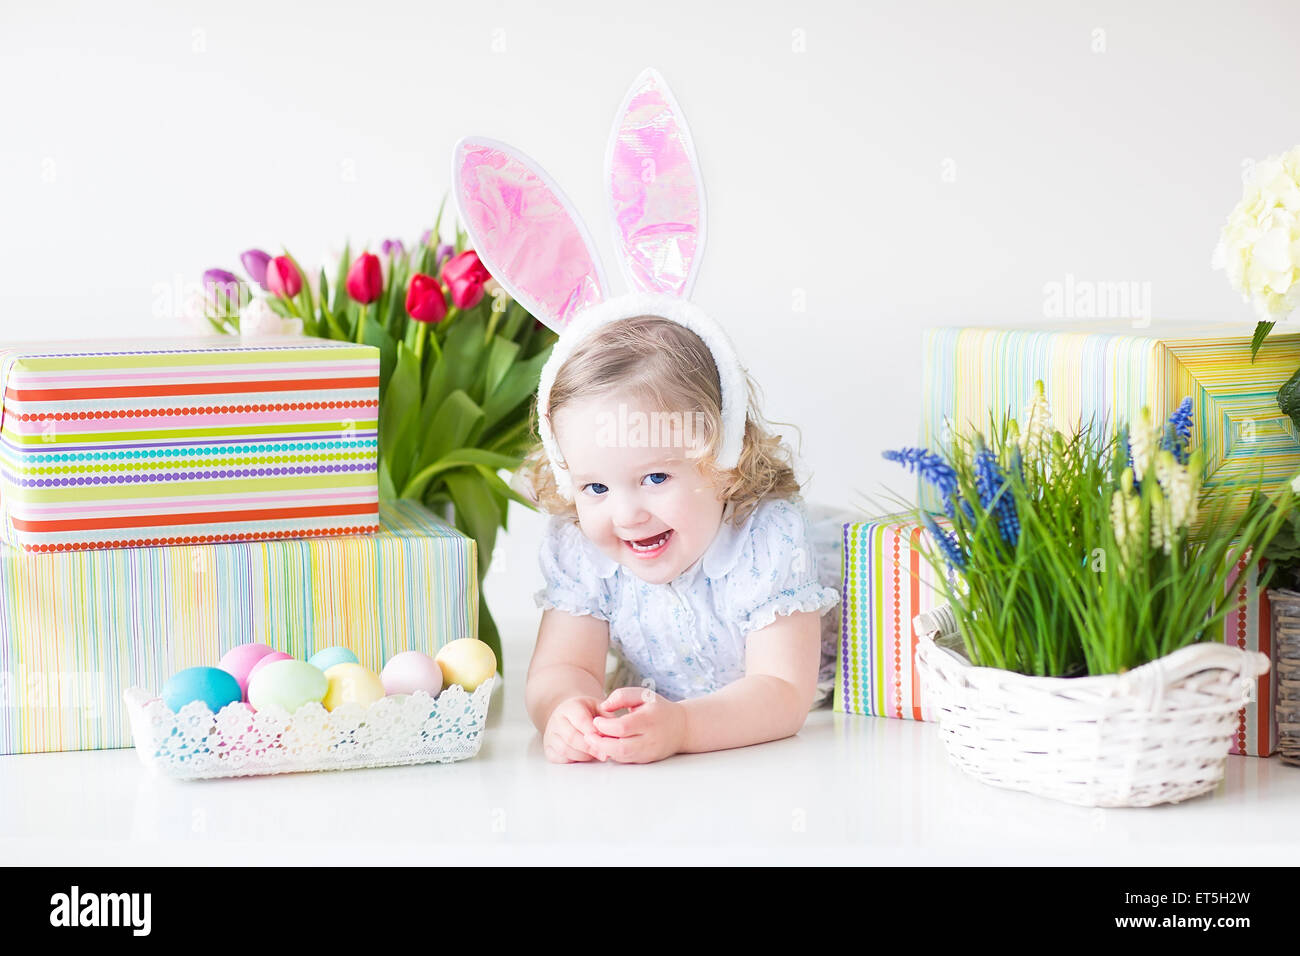 Happy laughing toddler girl wearing a blue dress and bunny ears happy laughing toddler girl wearing a blue dress and bunny ears playing with easter presents negle Gallery